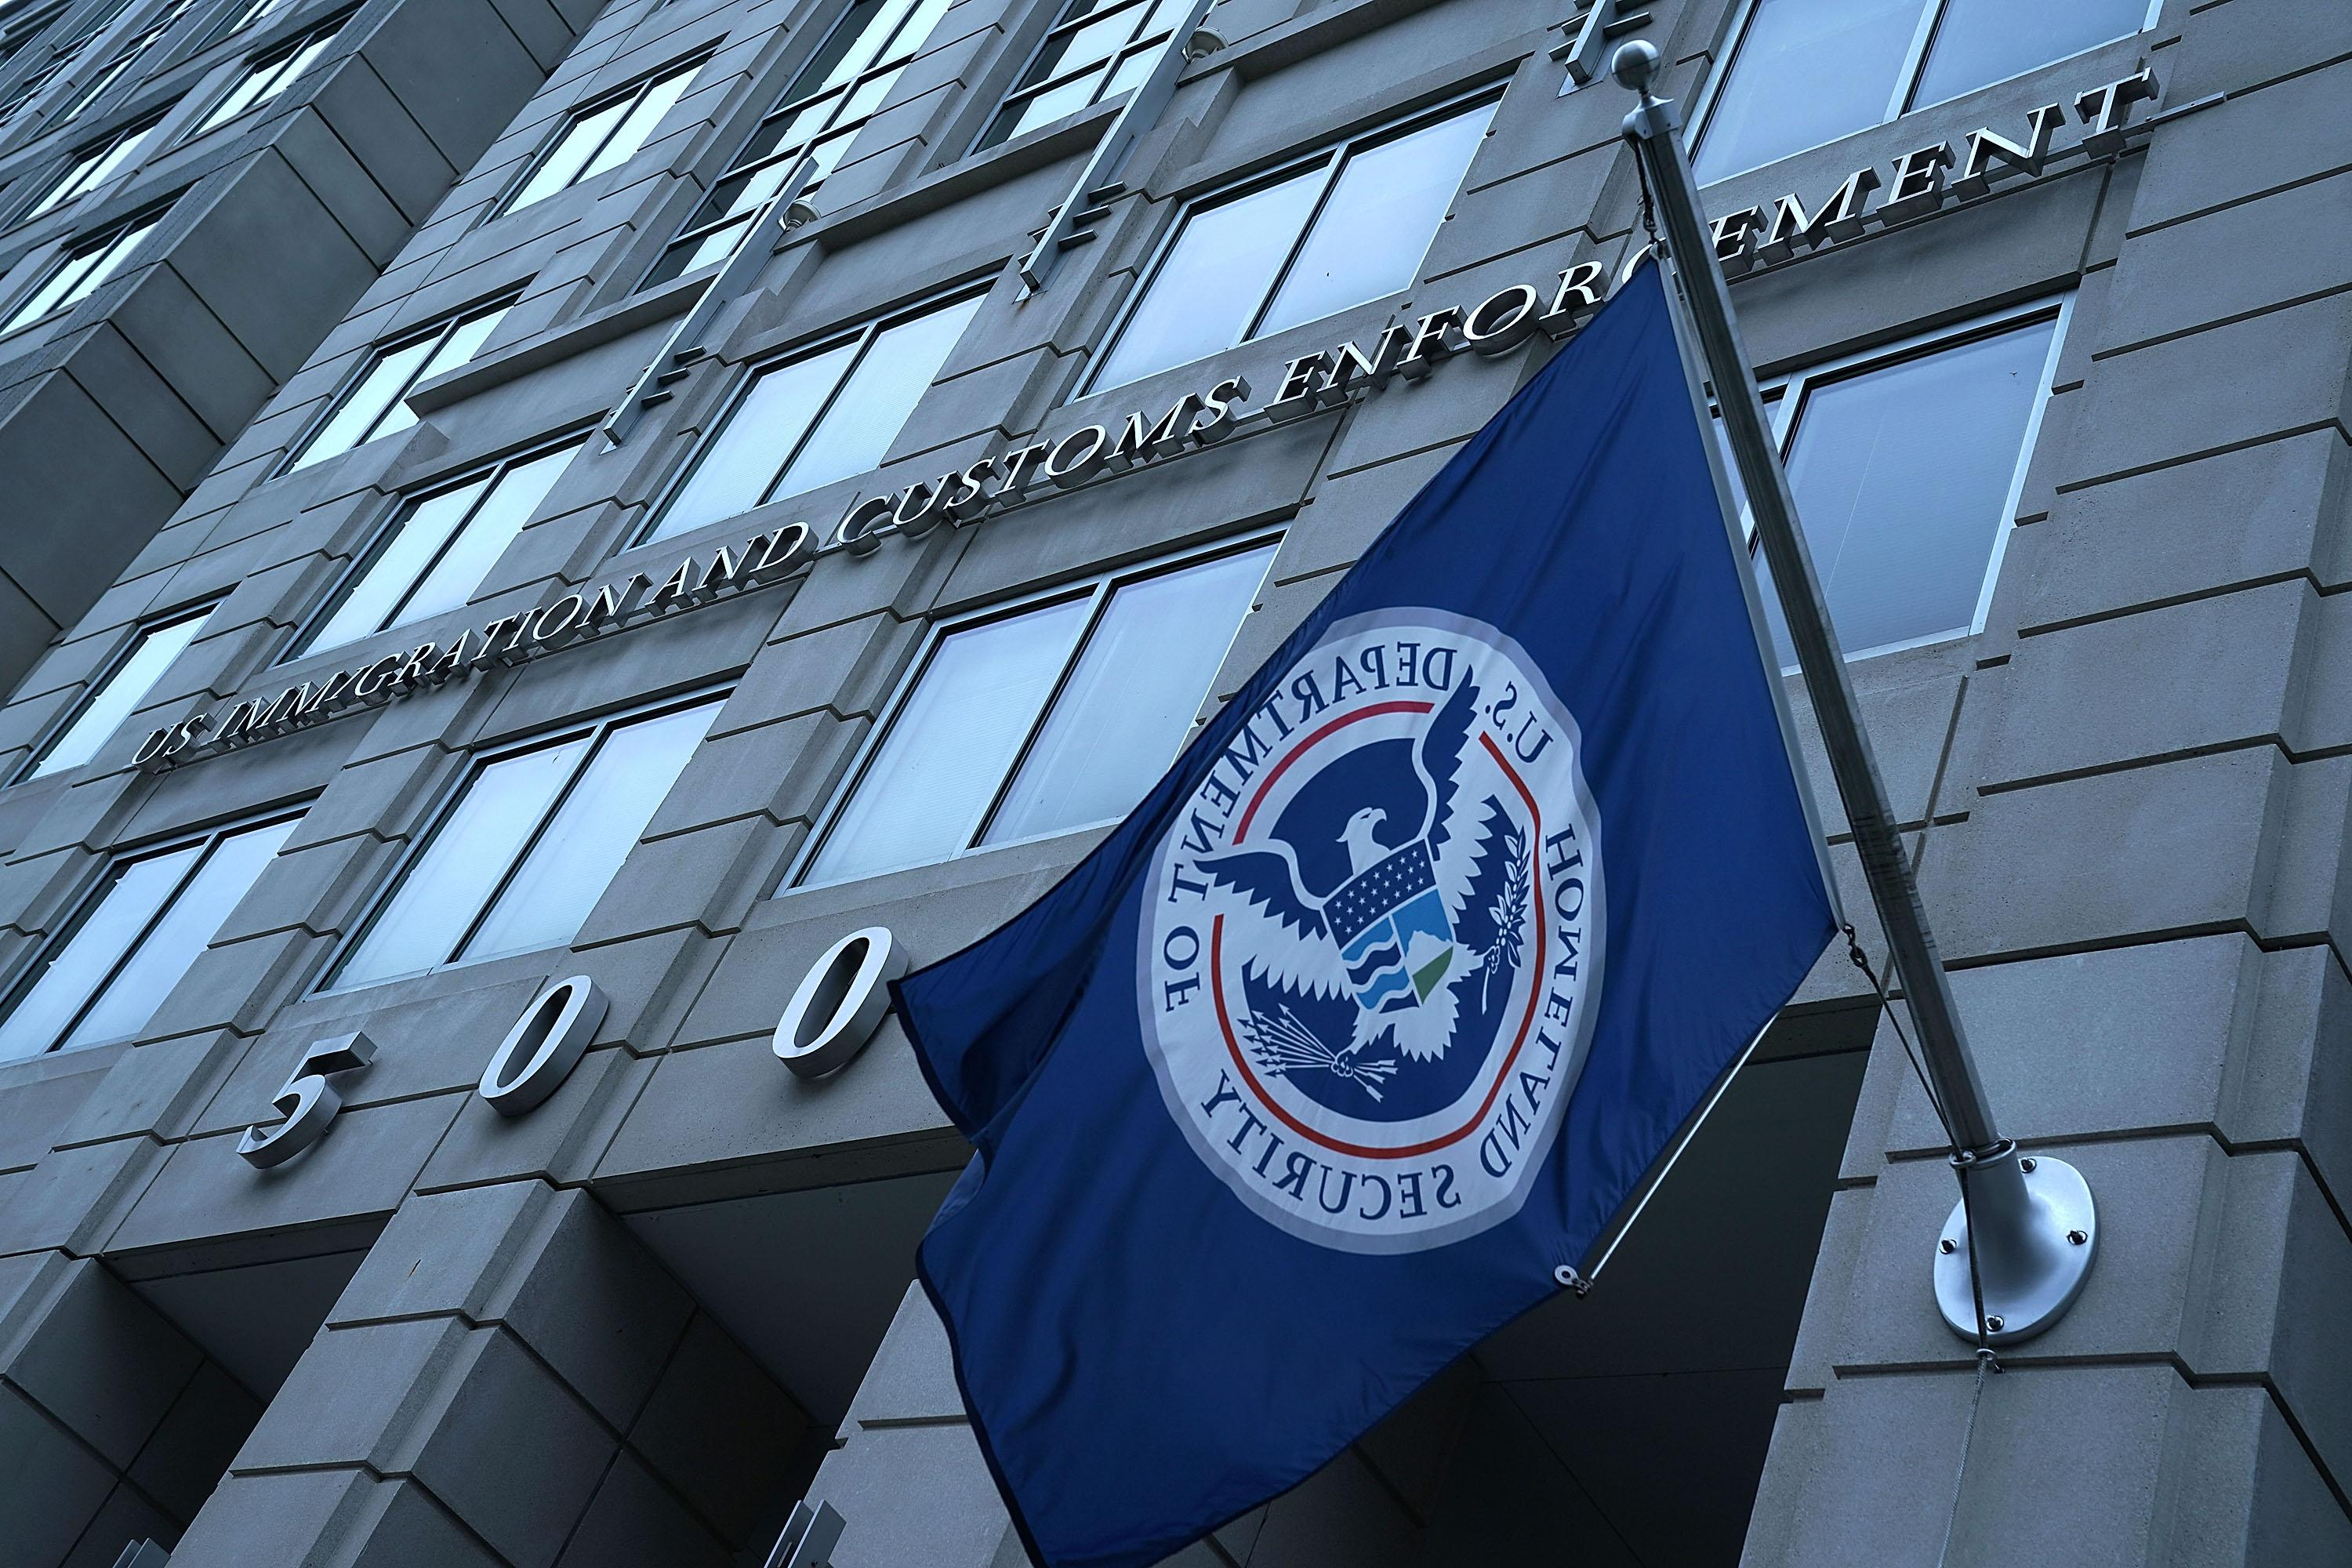 An exterior view of the U.S. Immigration and Customs Enforcement (ICE) agency headquarters in Washington, DC.